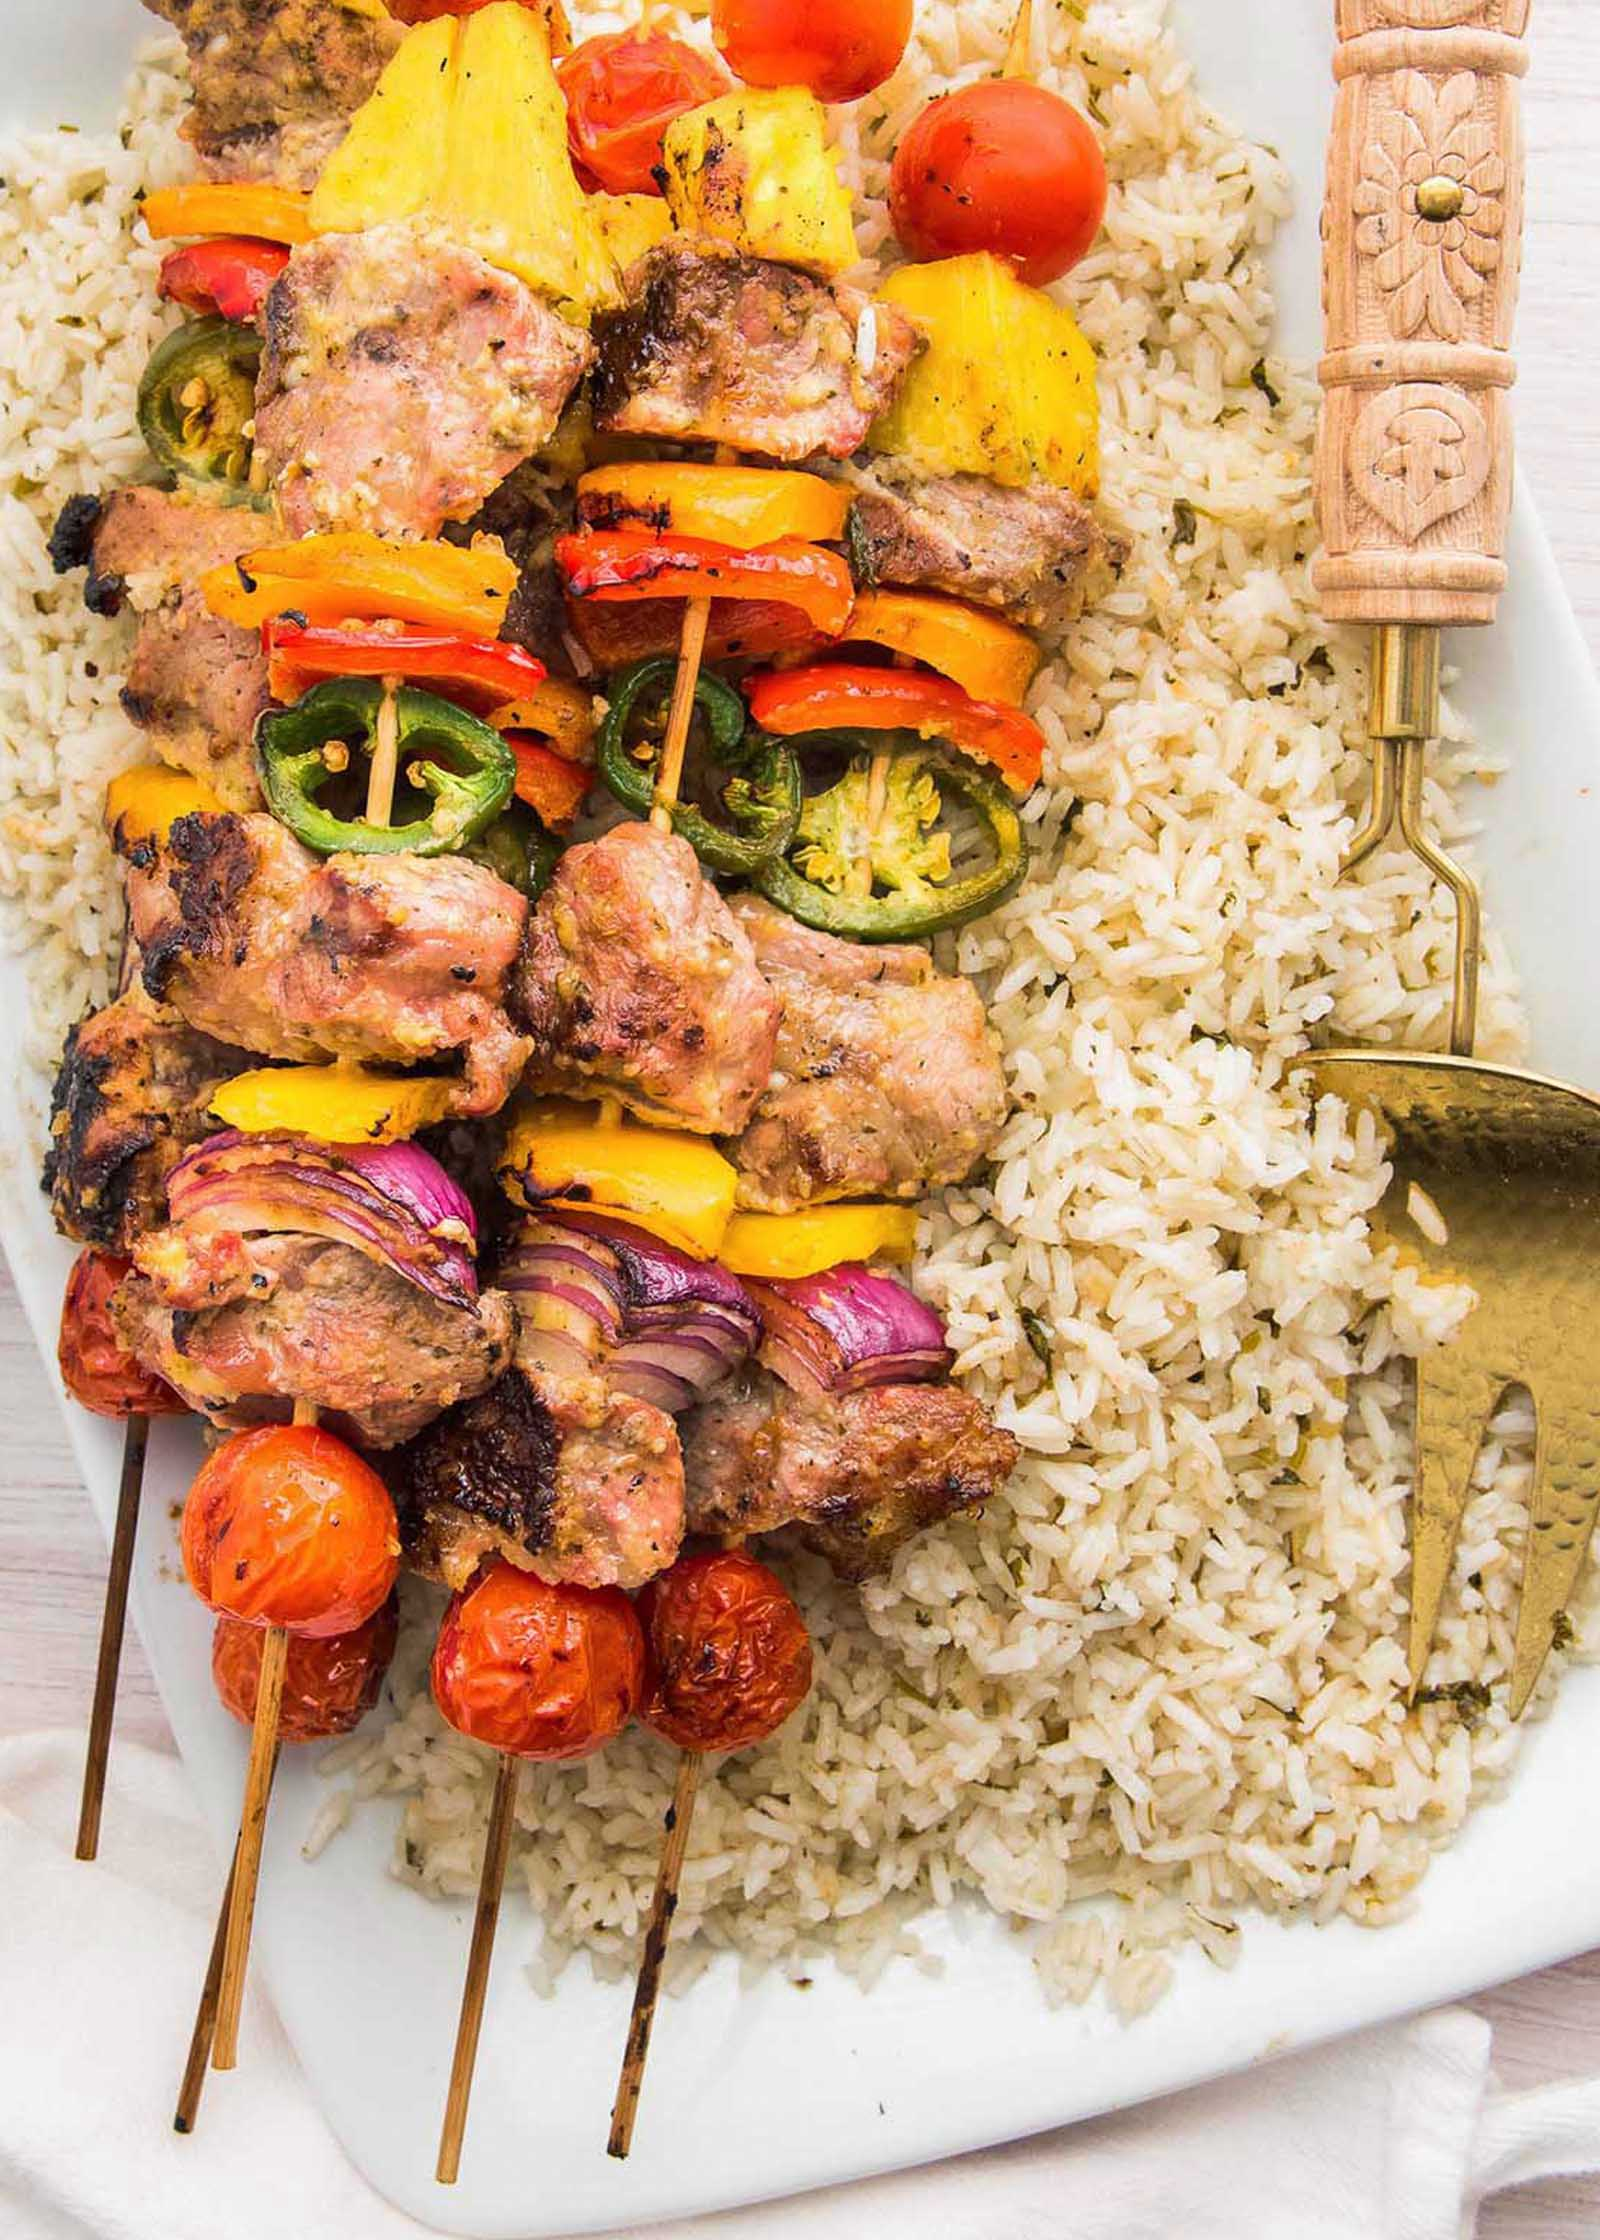 Garlic and citrus grilled pork kebabs are set over a bed of rice.